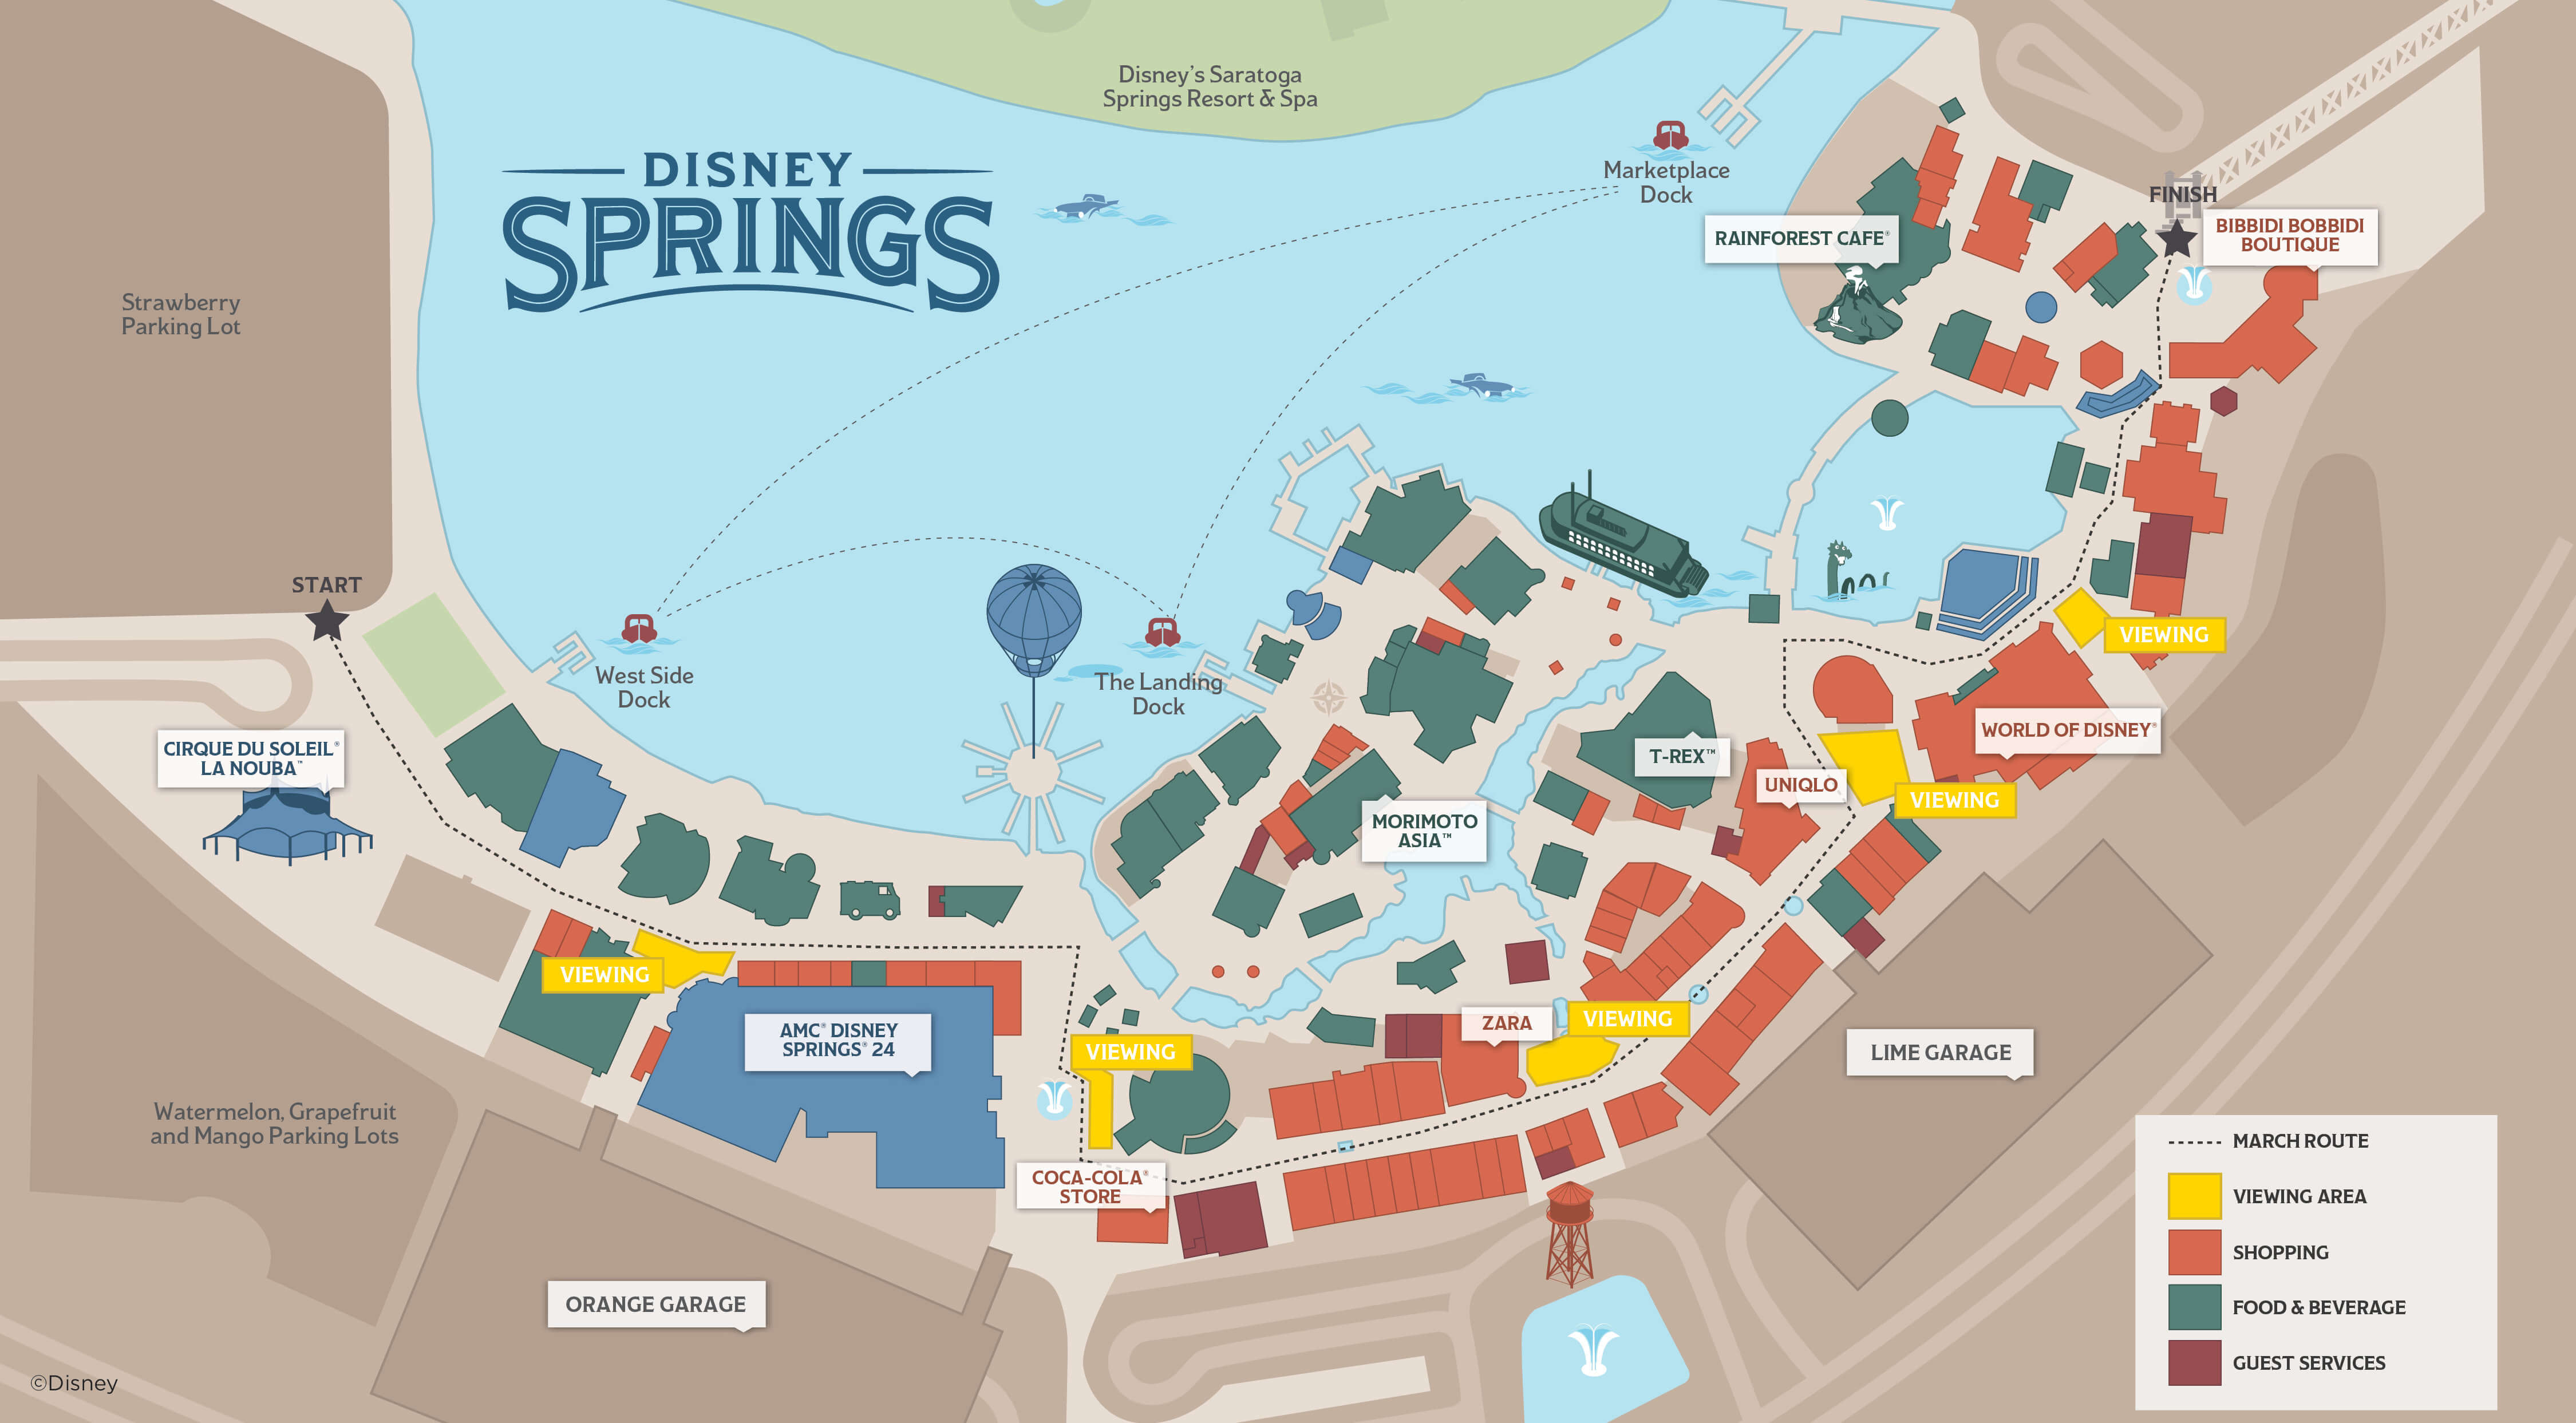 the day following the dci orlando event drum corps fans can stick around the city of orlando and see three world cl corps parade through disney springs